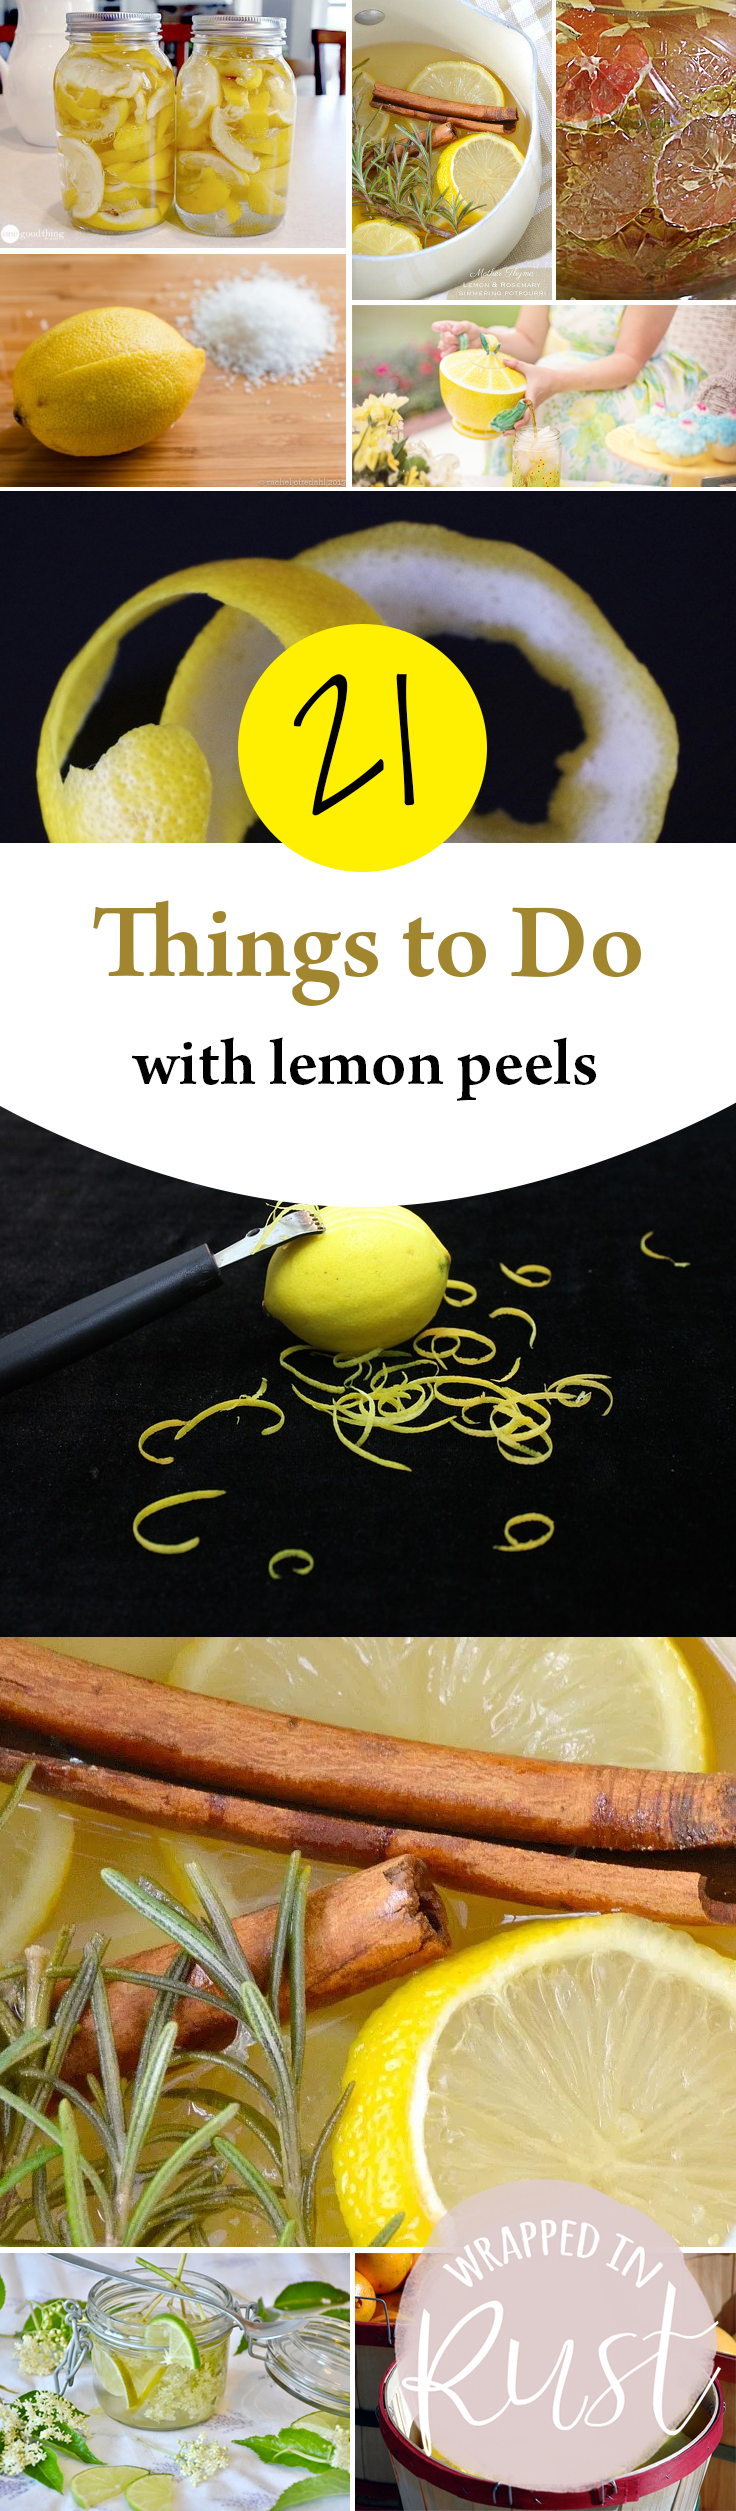 Things to Do With Lemon Peels, Lemon Peels, How to Clean With Lemon Peels, Natural Cleaners, Natural Cleaning Tips, Natural Cleaning Recipes, Cleaning Recipes, Cleaning Product Recipes, Lemon Peels, Cleaning With Lemon Peels, Popular Pin